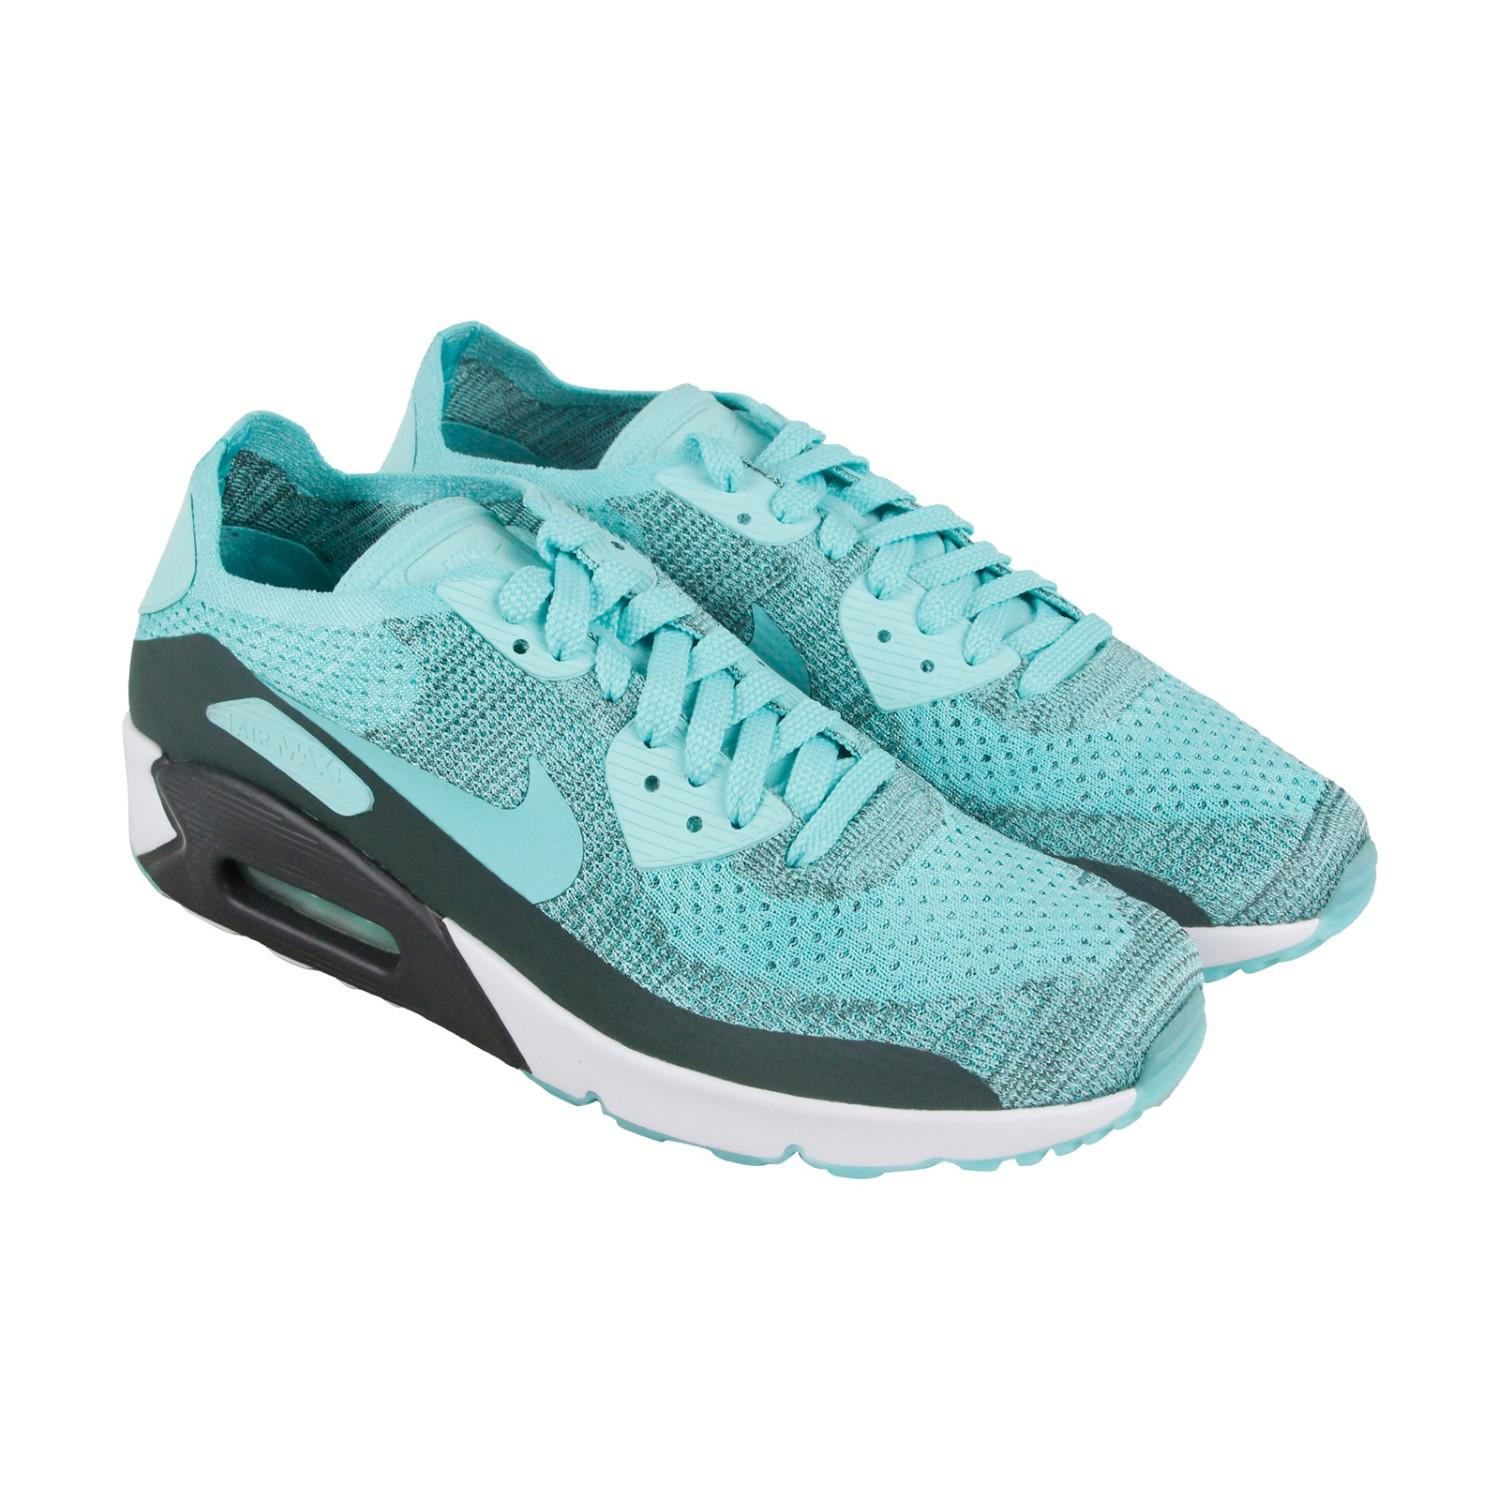 013f41c24cb00f Lyst - Nike Air Max 90 Ultra 2.0 Flyknit Running Shoes Hyper Turq ...